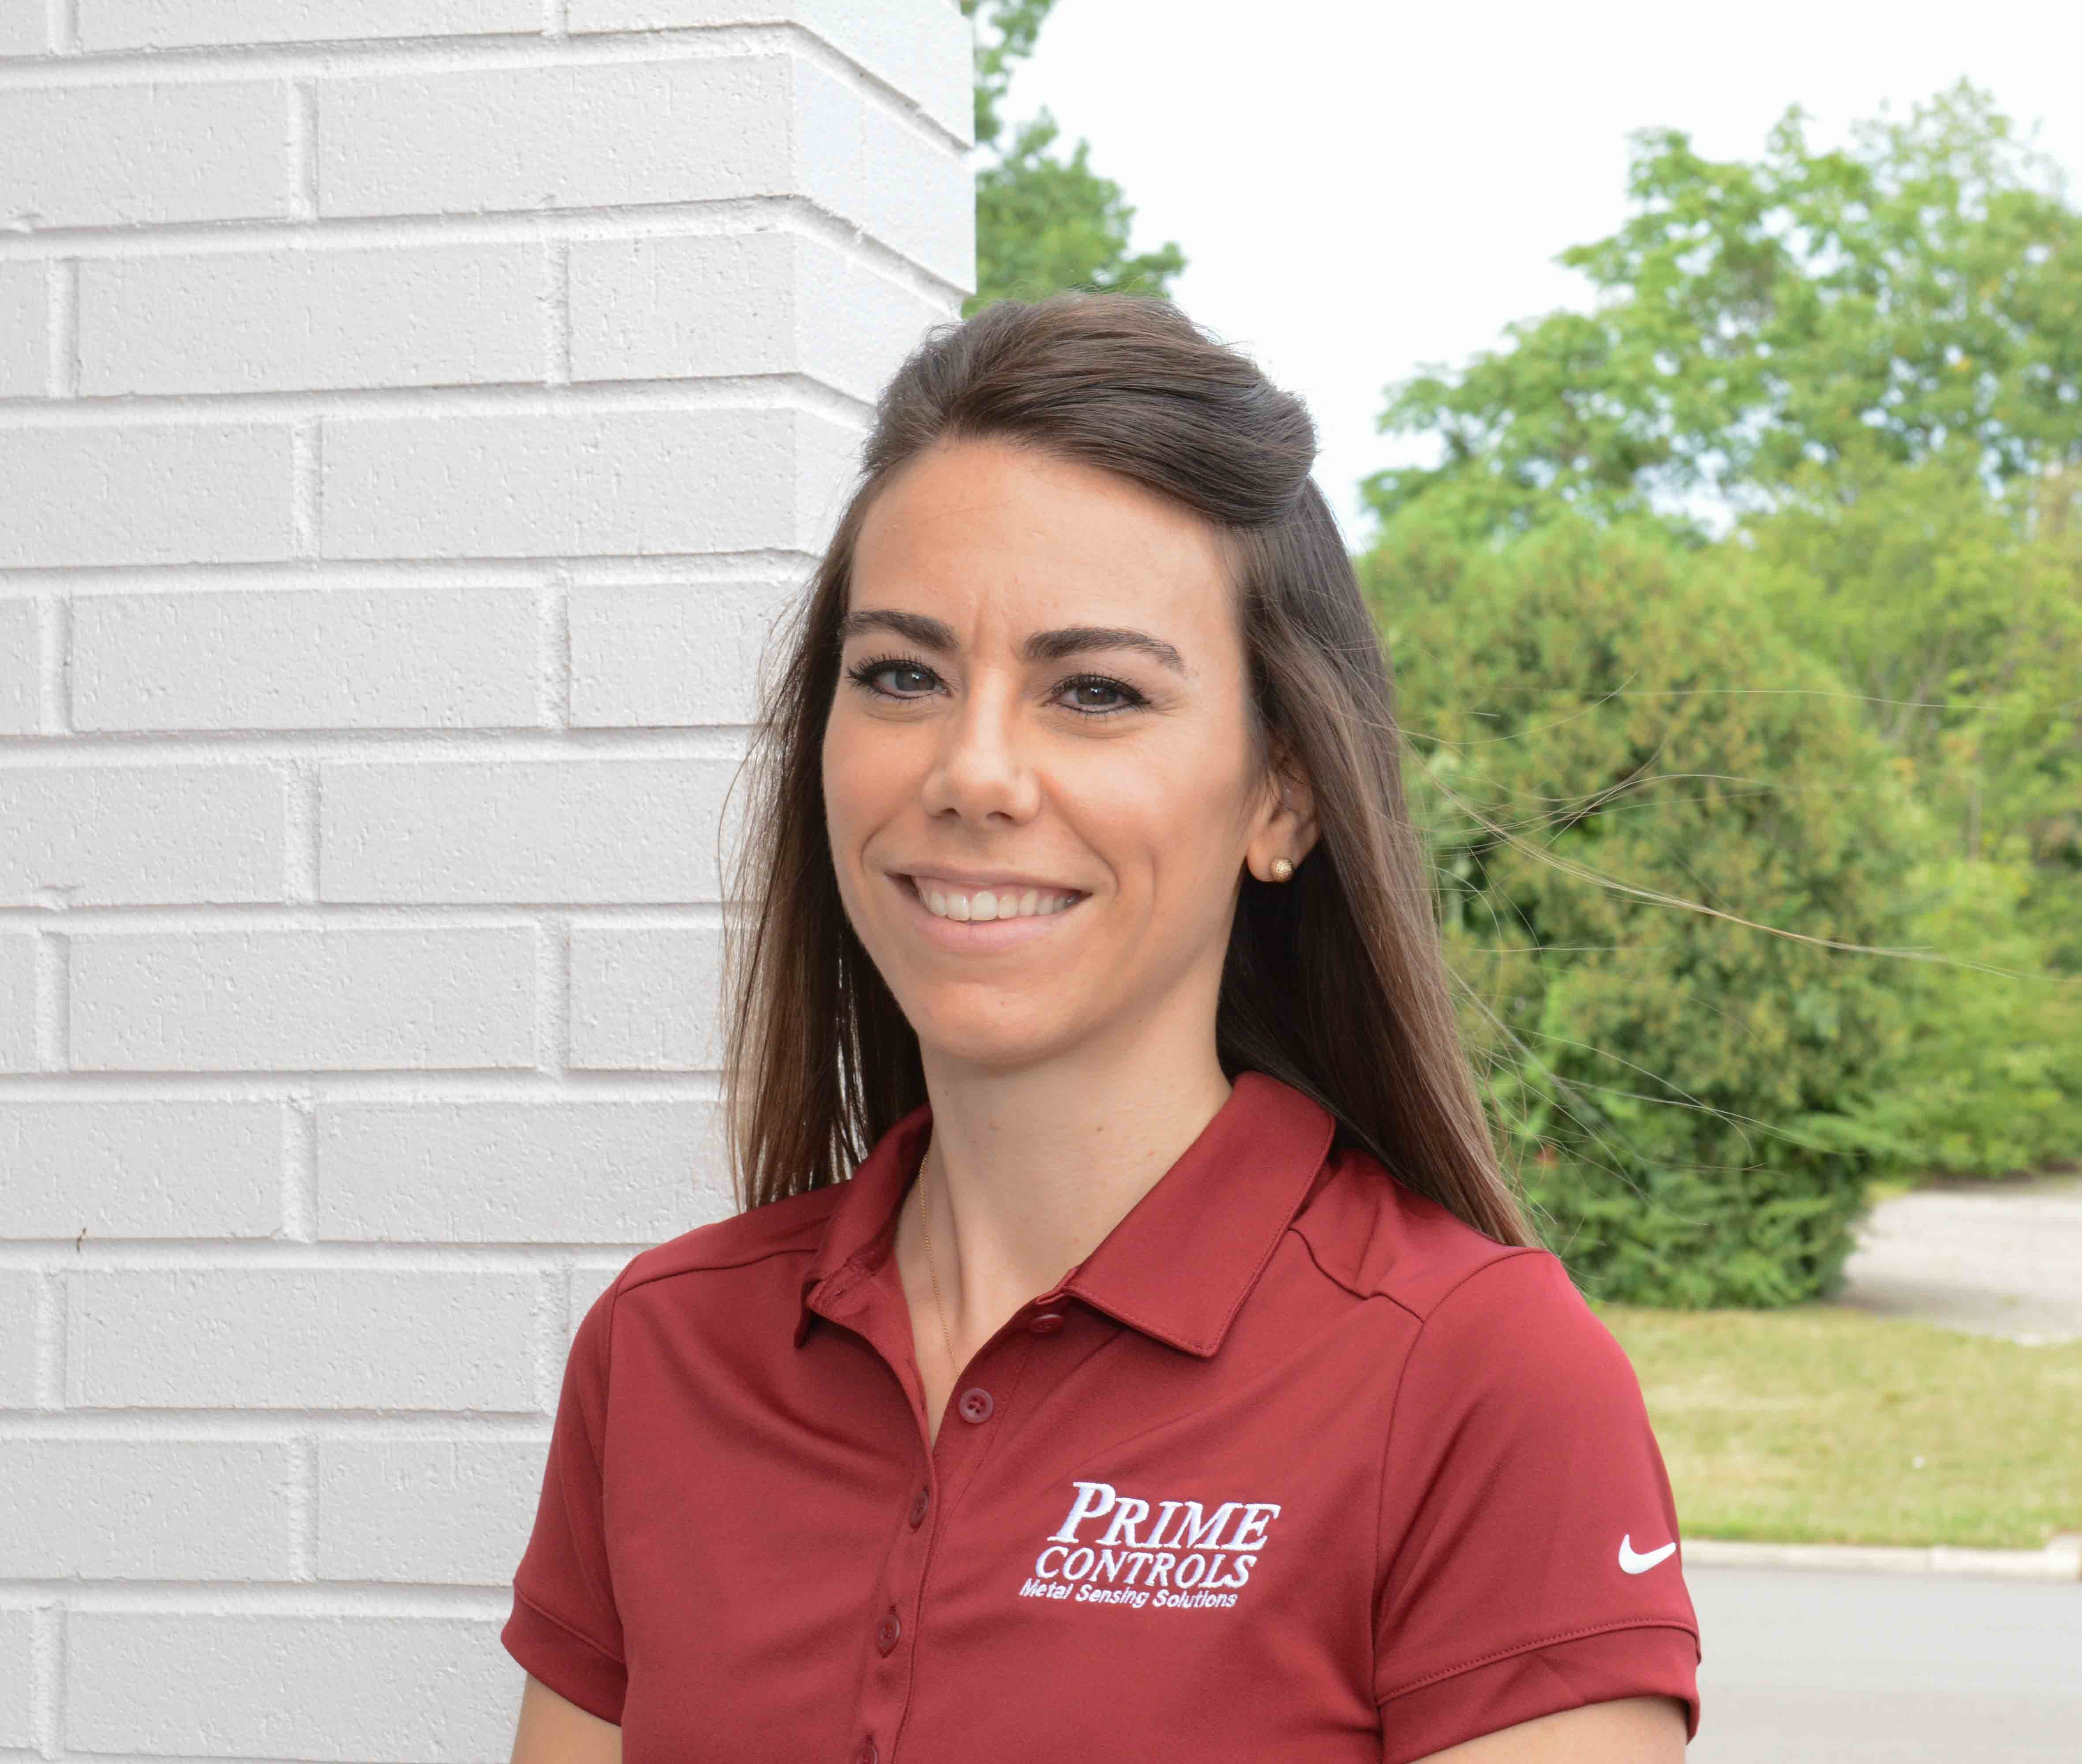 Prime Controls Staff Picture Brittany Loyd